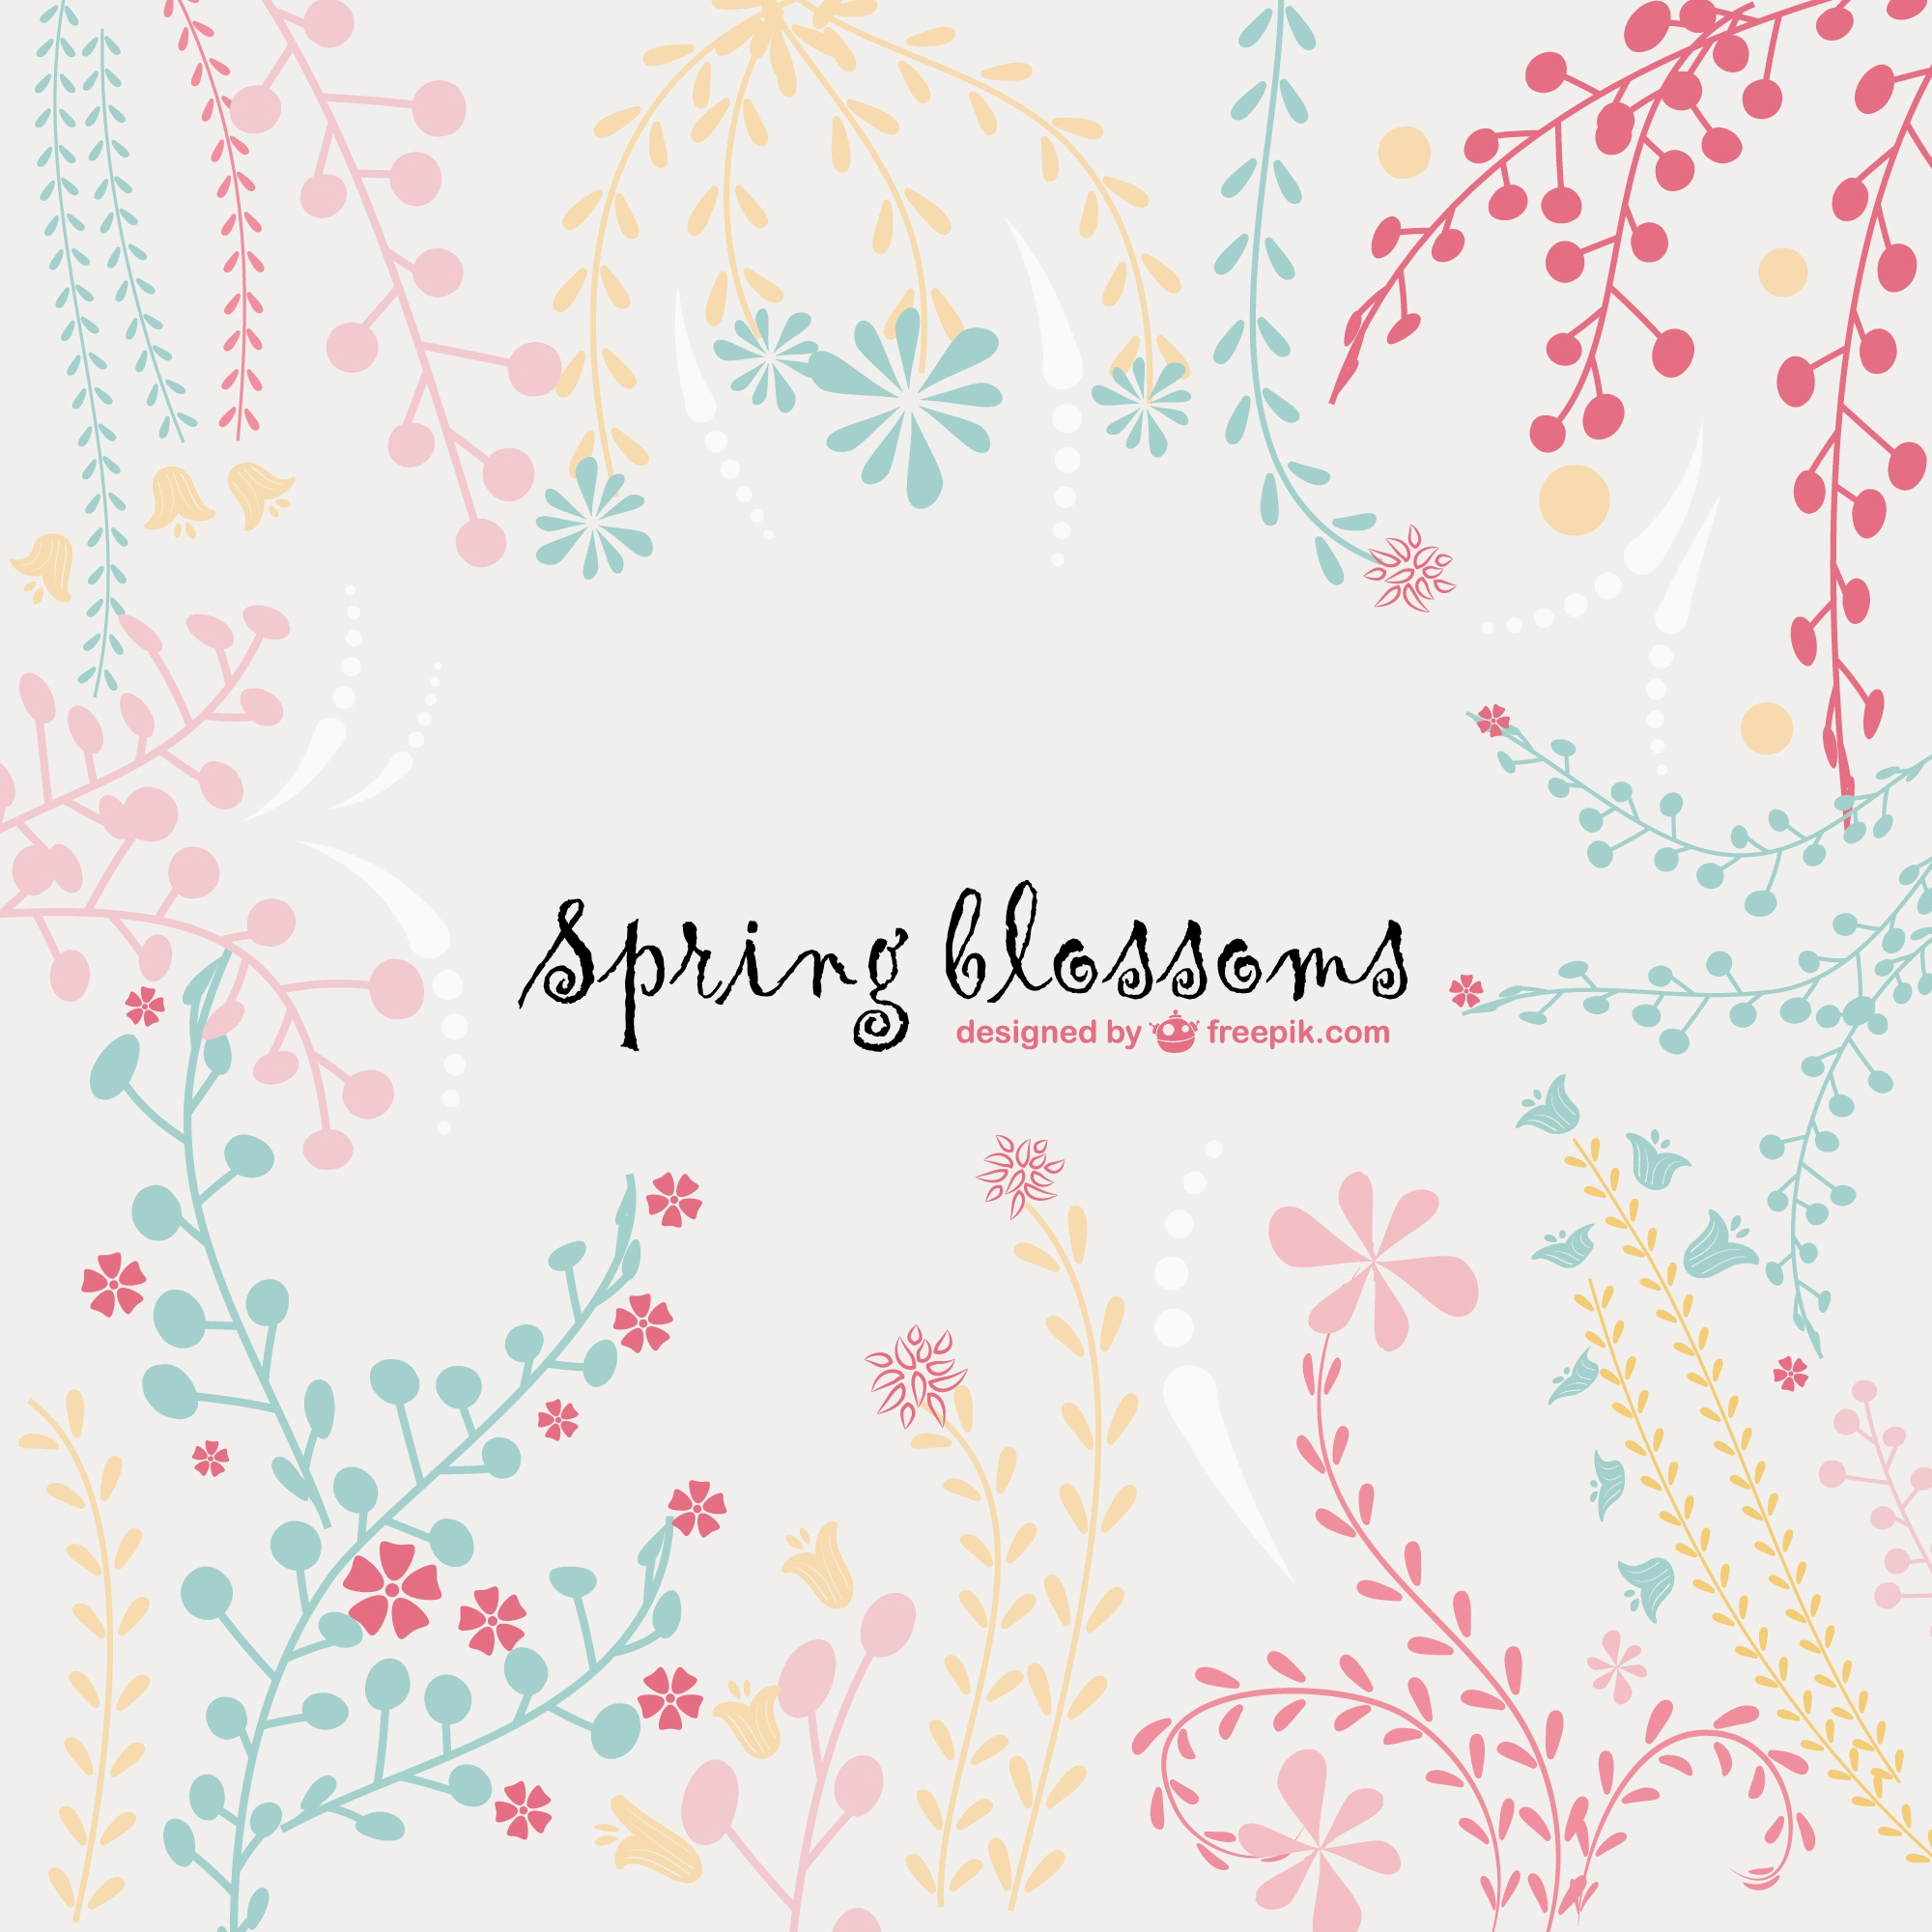 Spring blossoms vector background